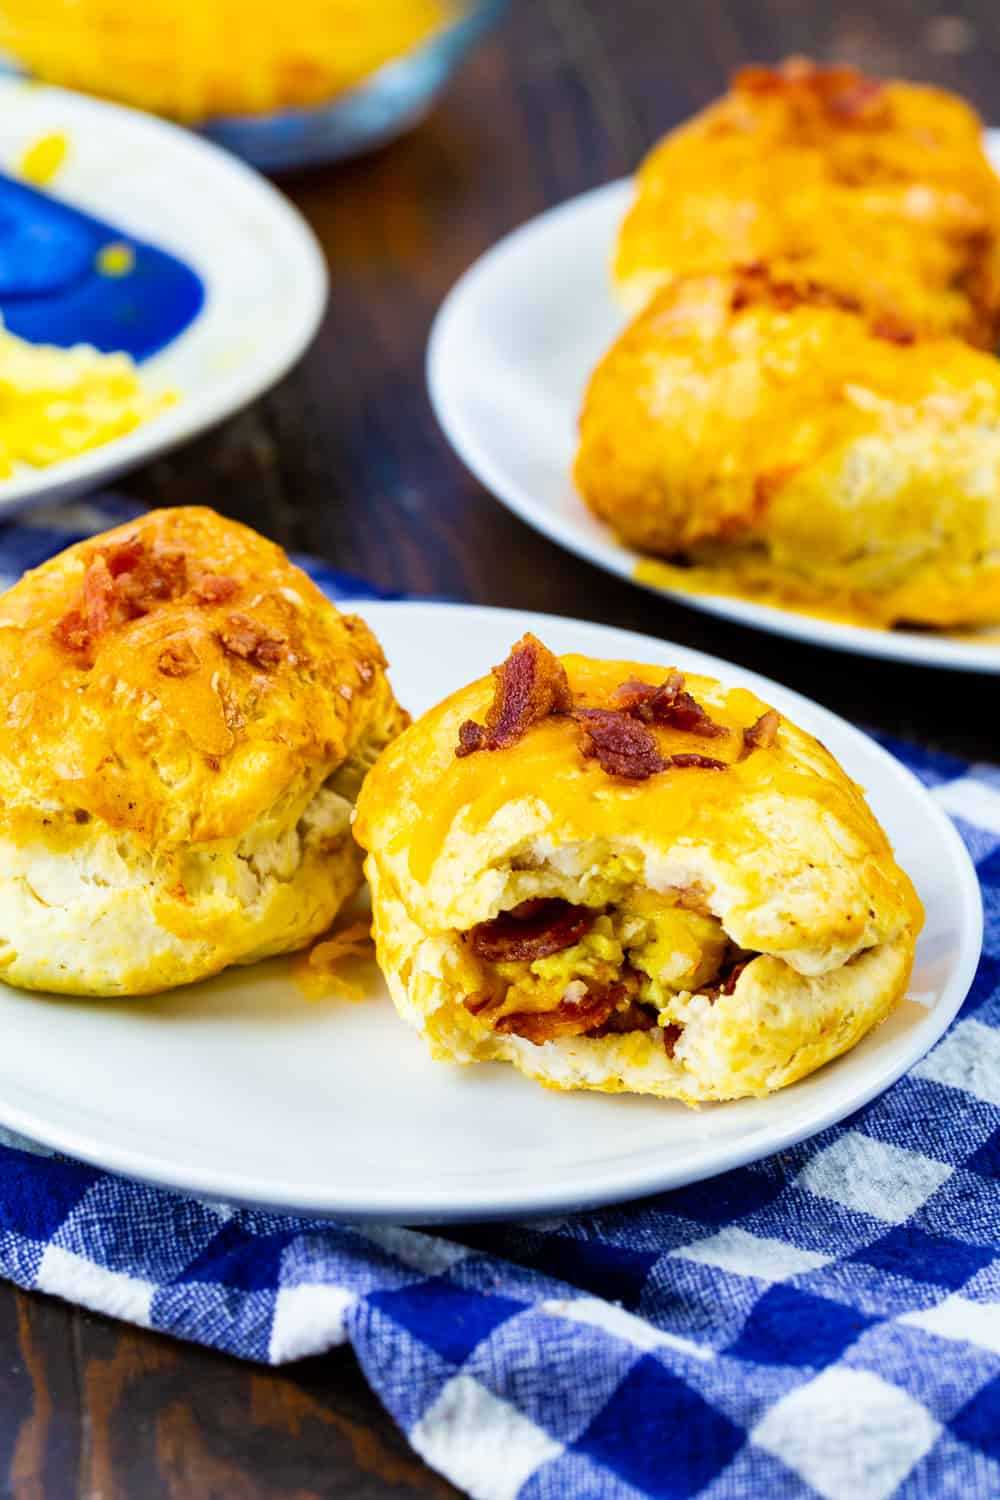 Biscuit Bombs on small plates.